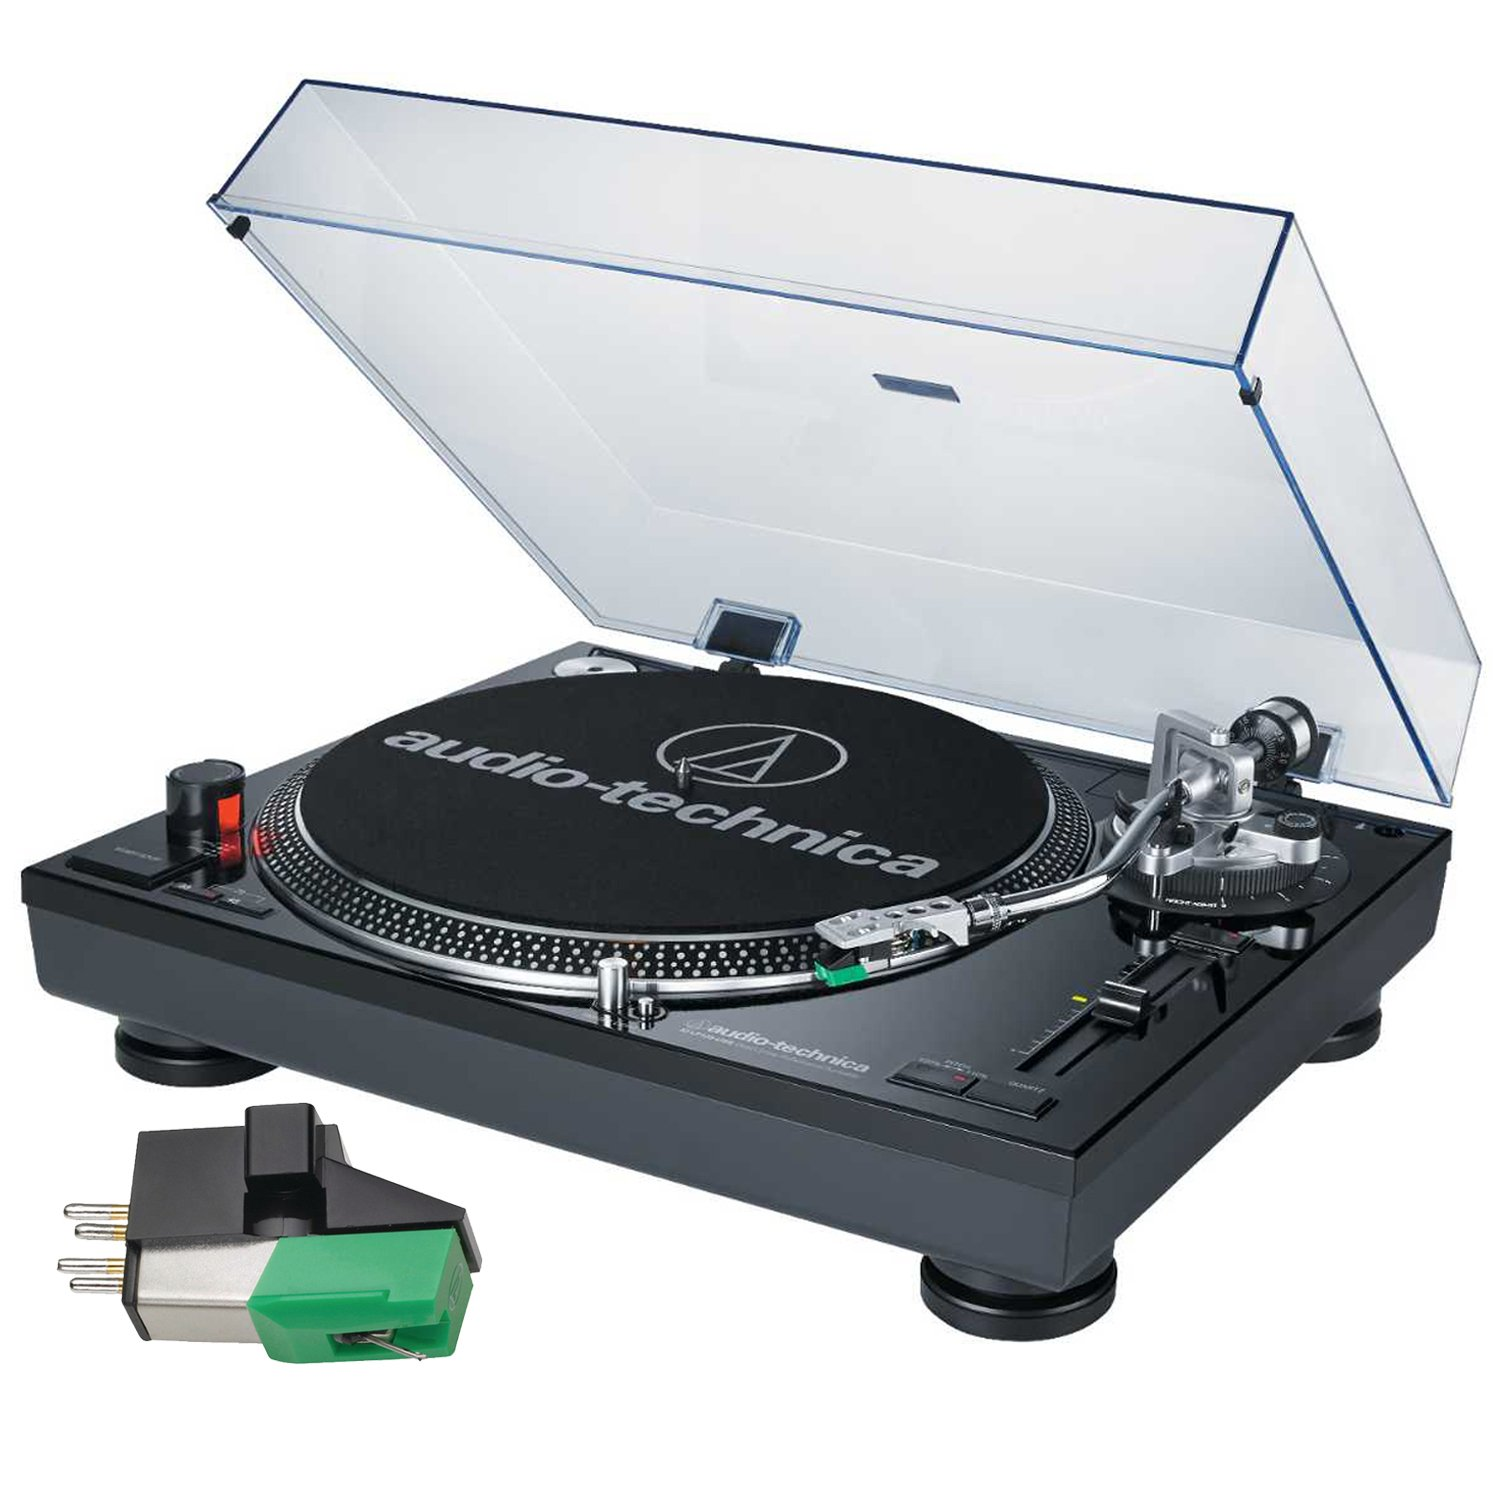 Audio-Technica Professional Turntable Black Friday deal 2020